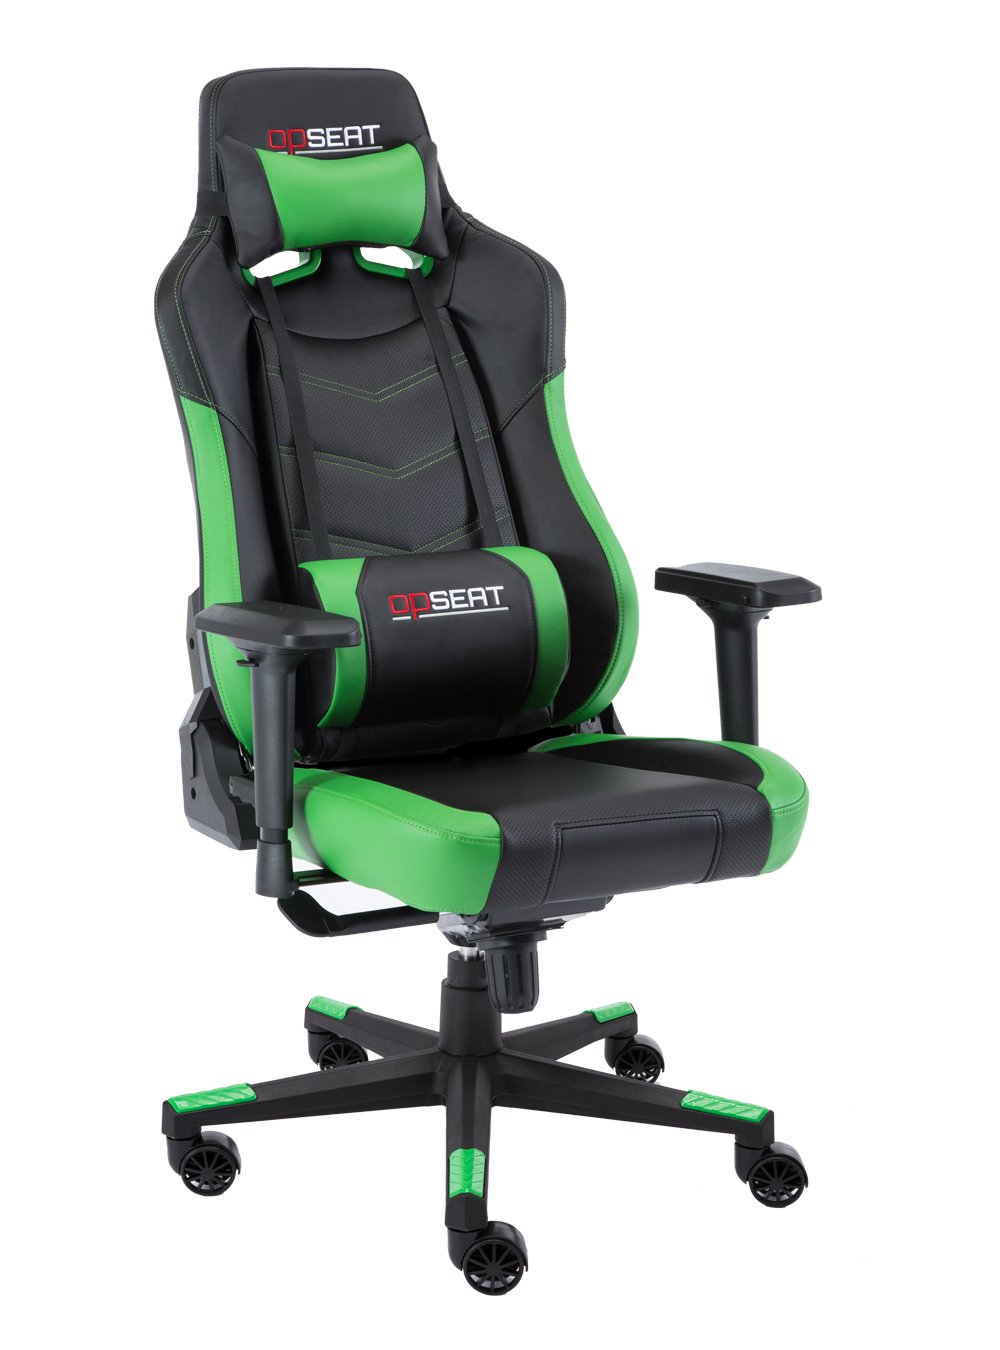 OPSEAT Grandmaster Series 2018 Computer Gaming Chair Racing Seat PC Gaming Desk Office Chair - Green